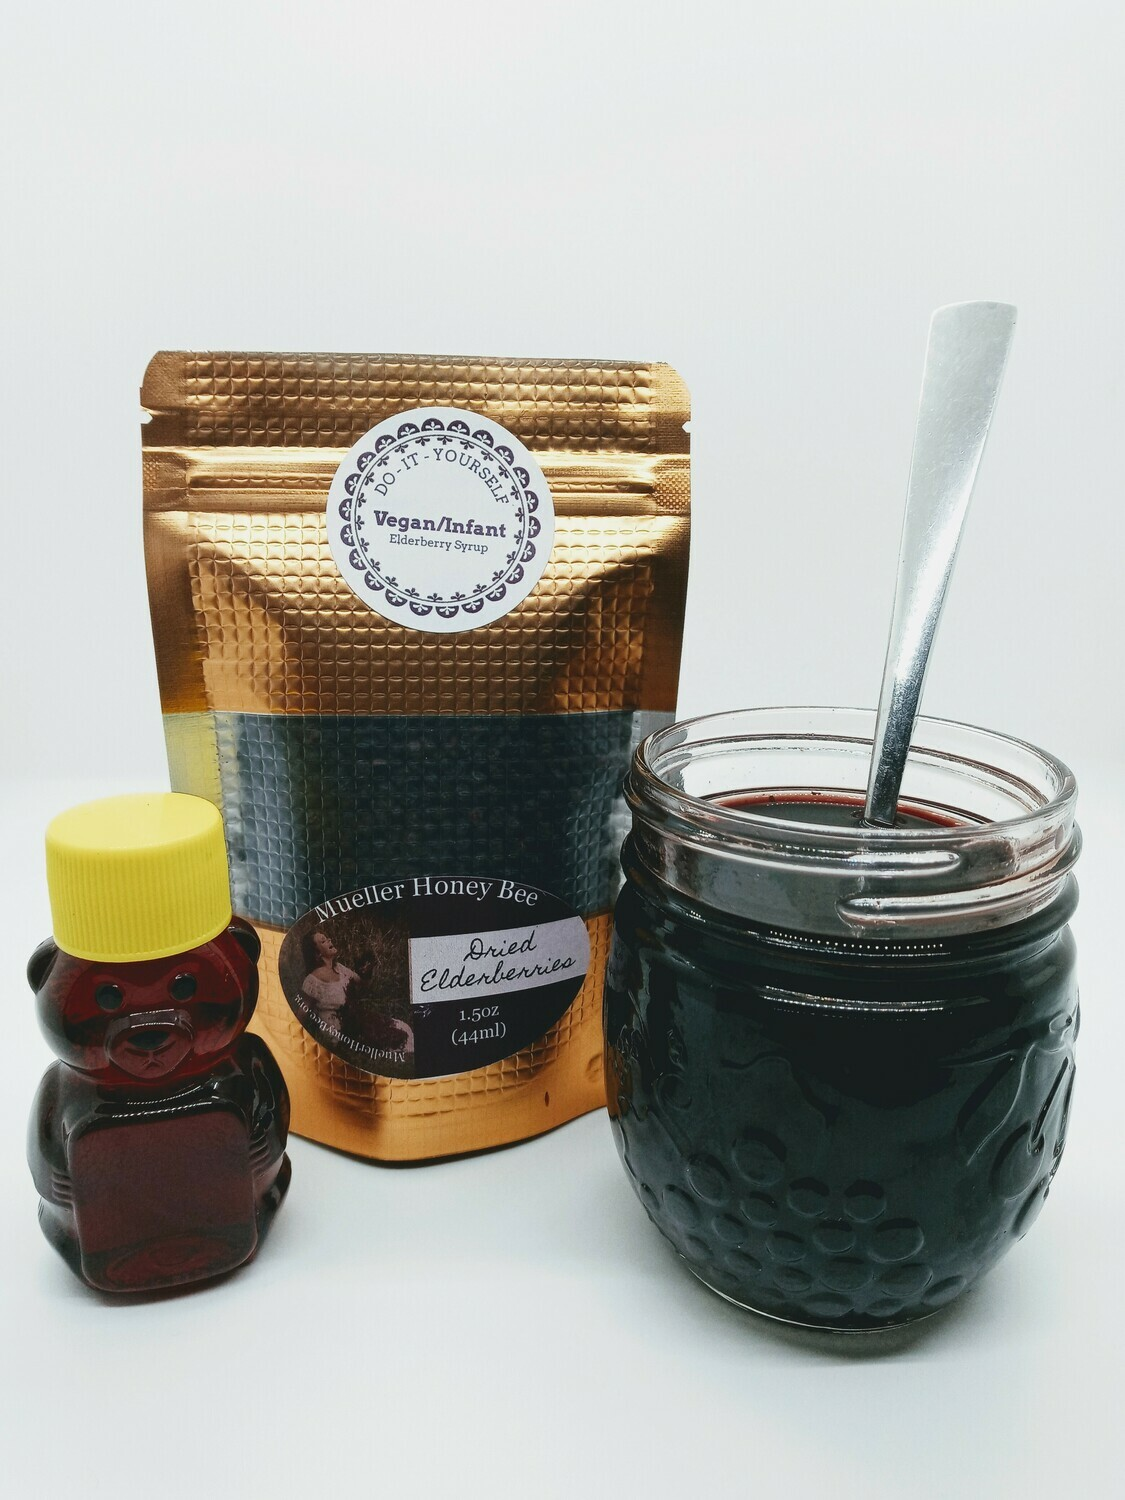 Vegan/Infant DIY Elderberry Kit with Ohio Maple Syrup (makes approx 16 oz)